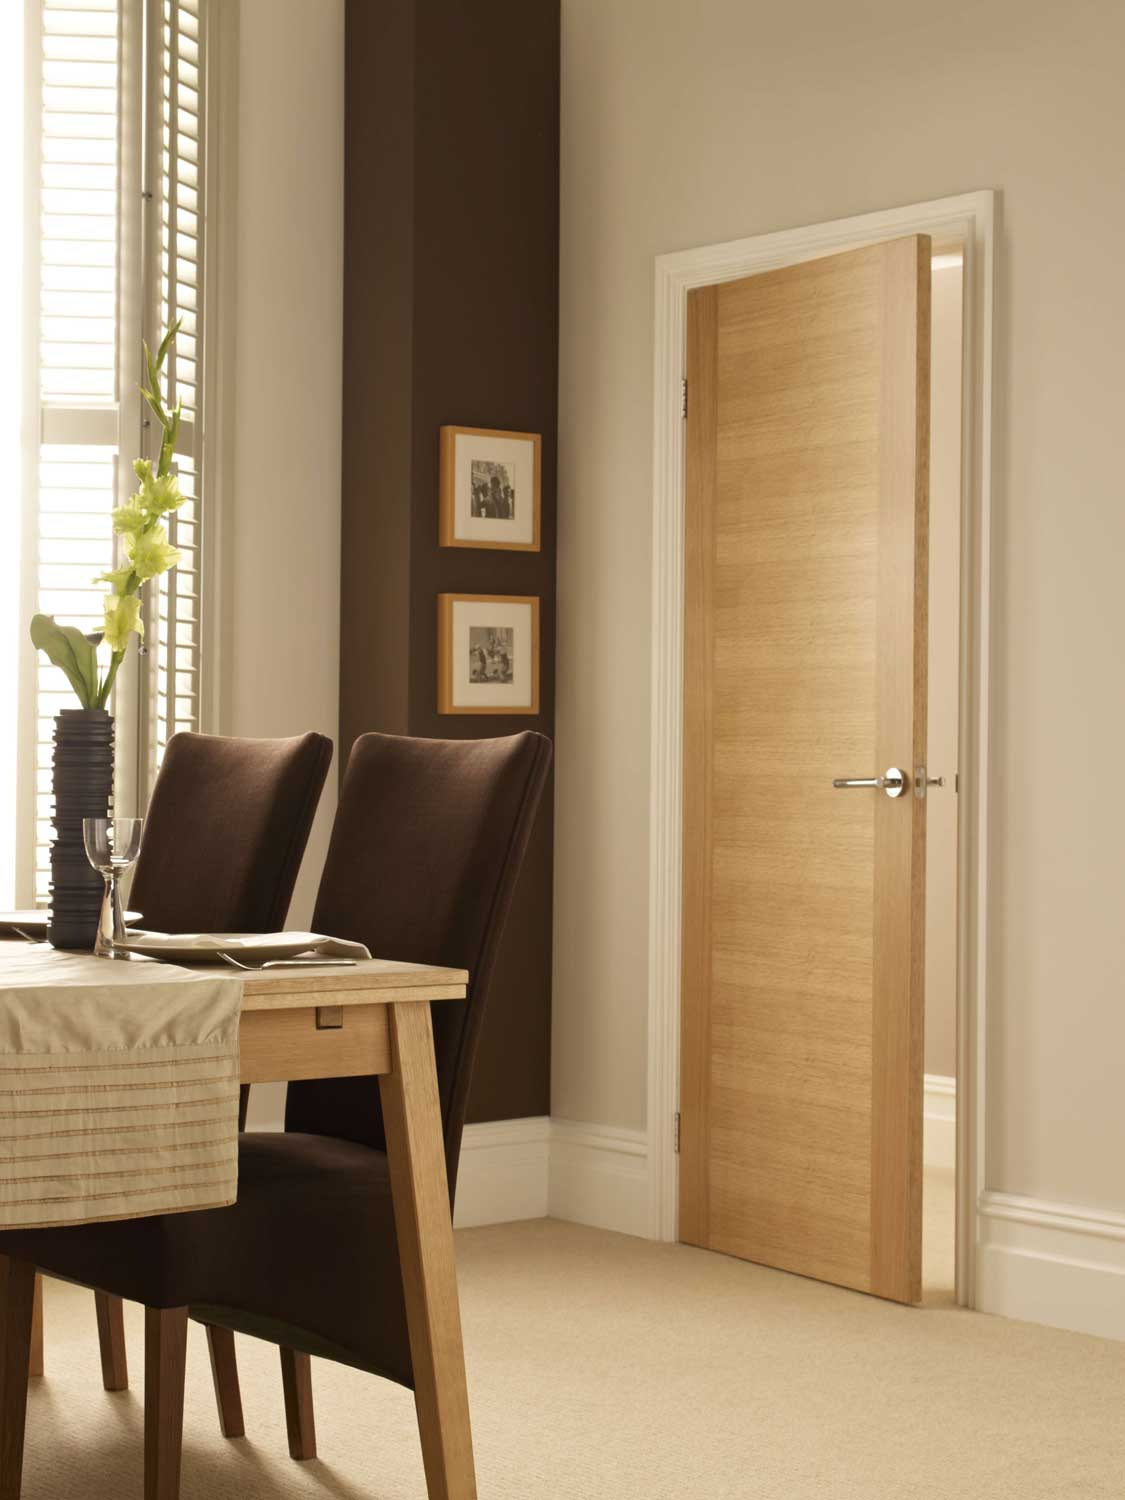 2 sileed oak veneer match flush doors Flush interior wood doors